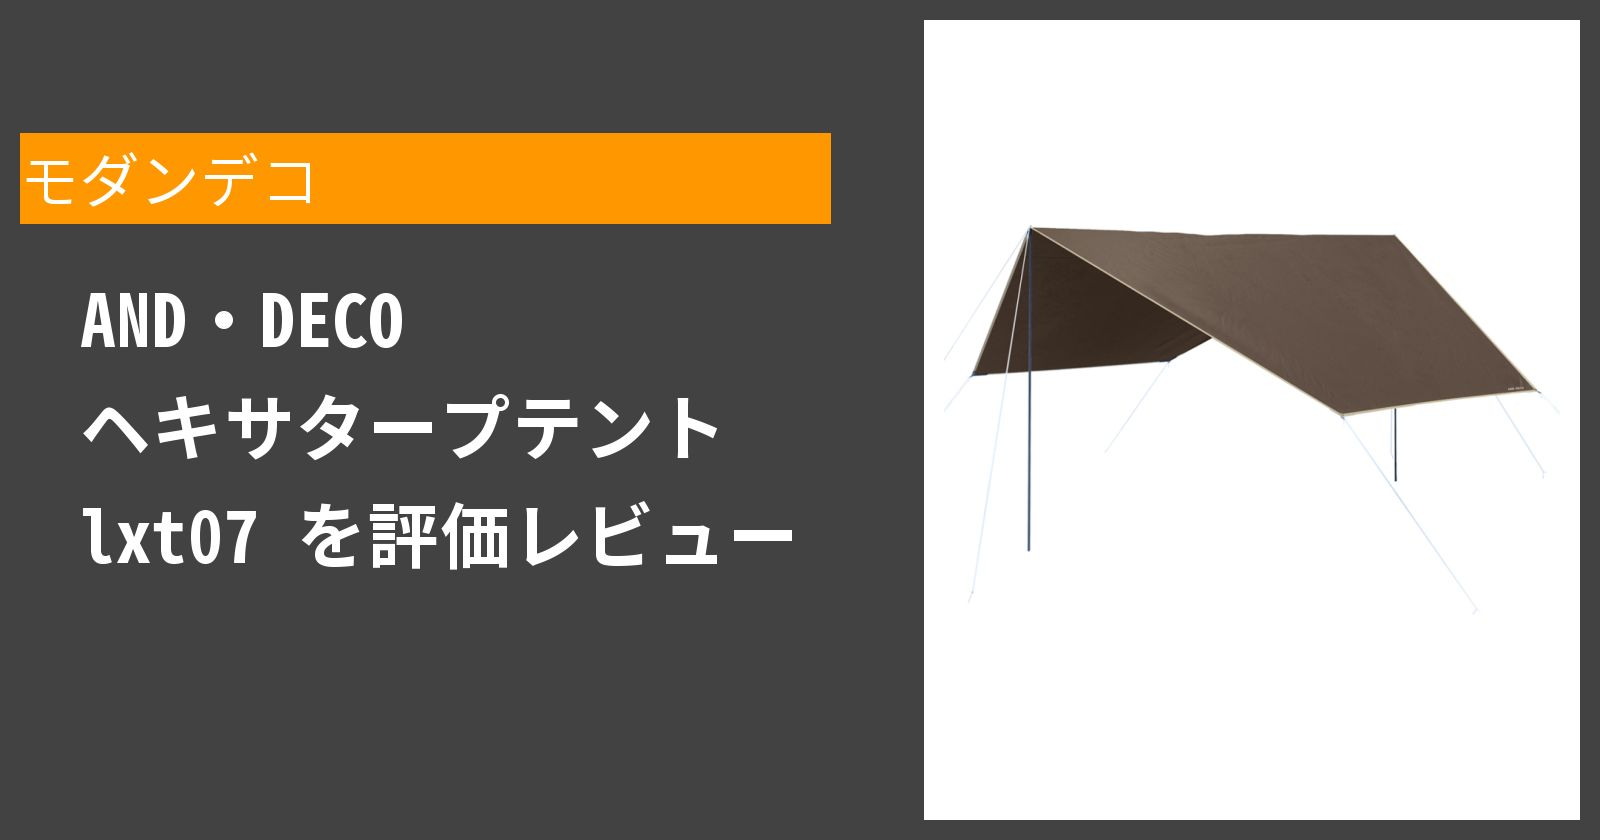 AND・DECO ヘキサタープテント lxt07を徹底評価